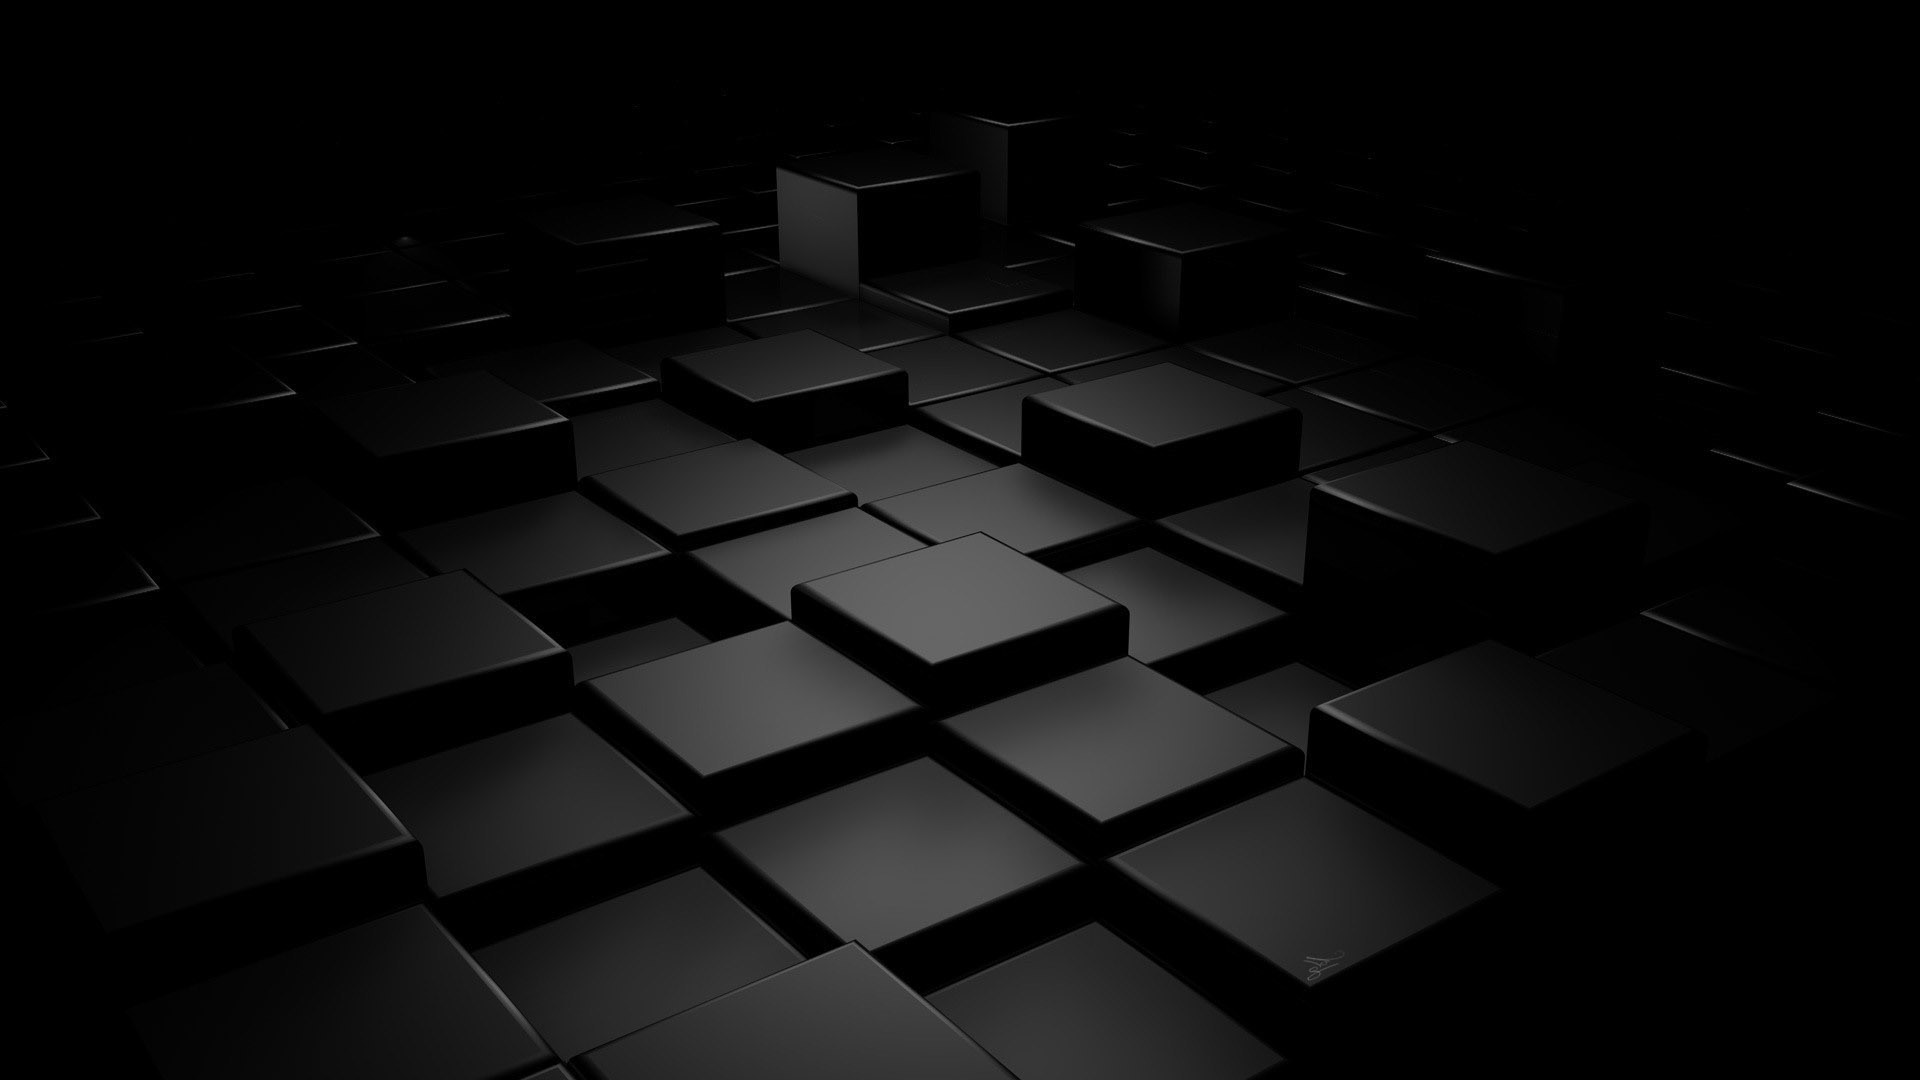 Black abstract Wallpapers Images Photos Pictures Backgrounds 1920x1080